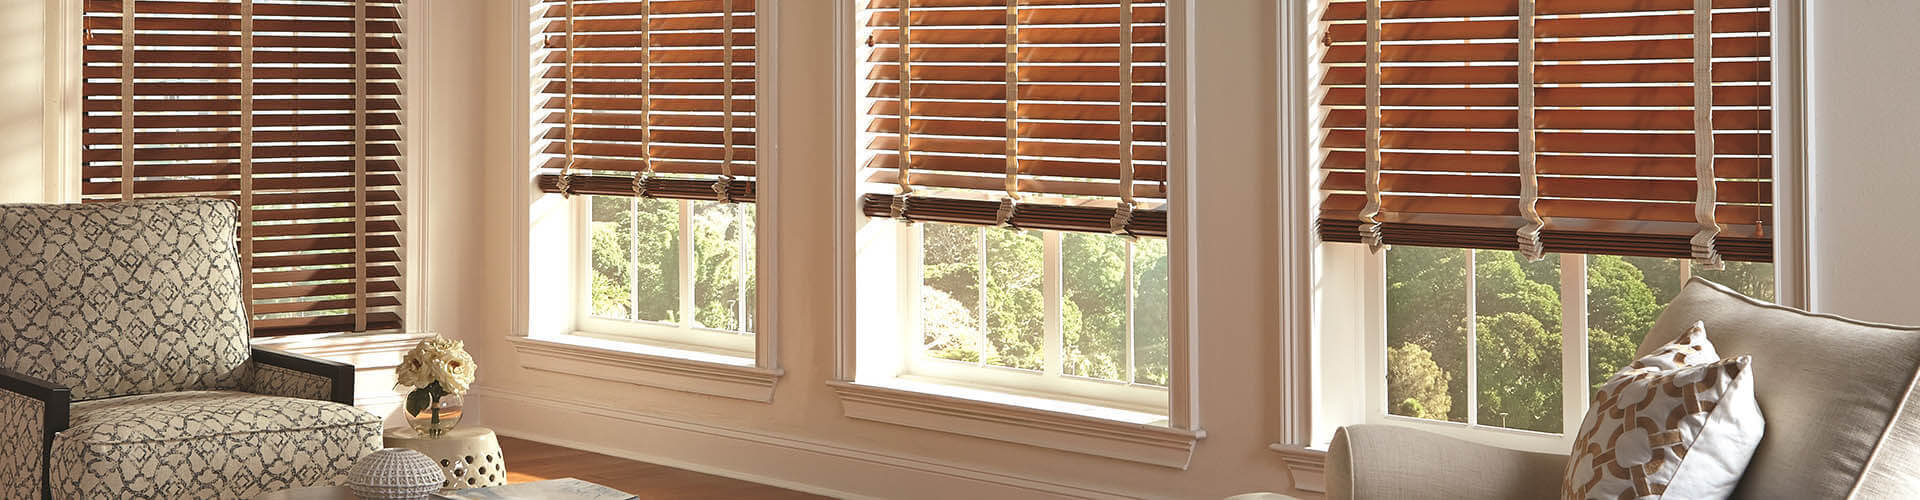 feature save and factory at beautiful shutters affordable blinds on prices